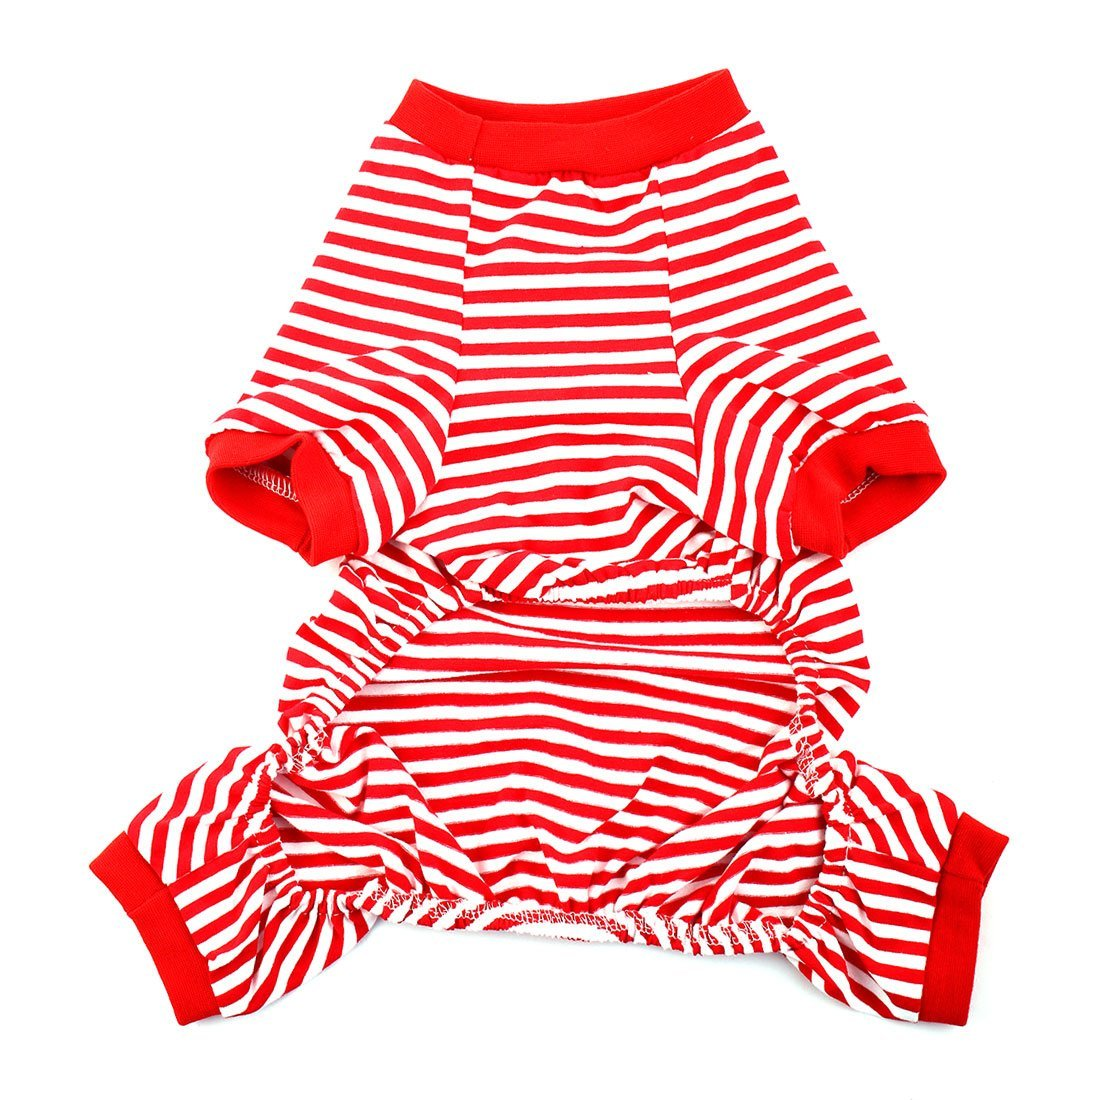 Amazon.com : Padrão DealMux Anchor leme Bordado Pet Puppy Dog Stripe Dormir Vestidos Roupa Pijama Jumpsuit Tamanho L : Pet Supplies